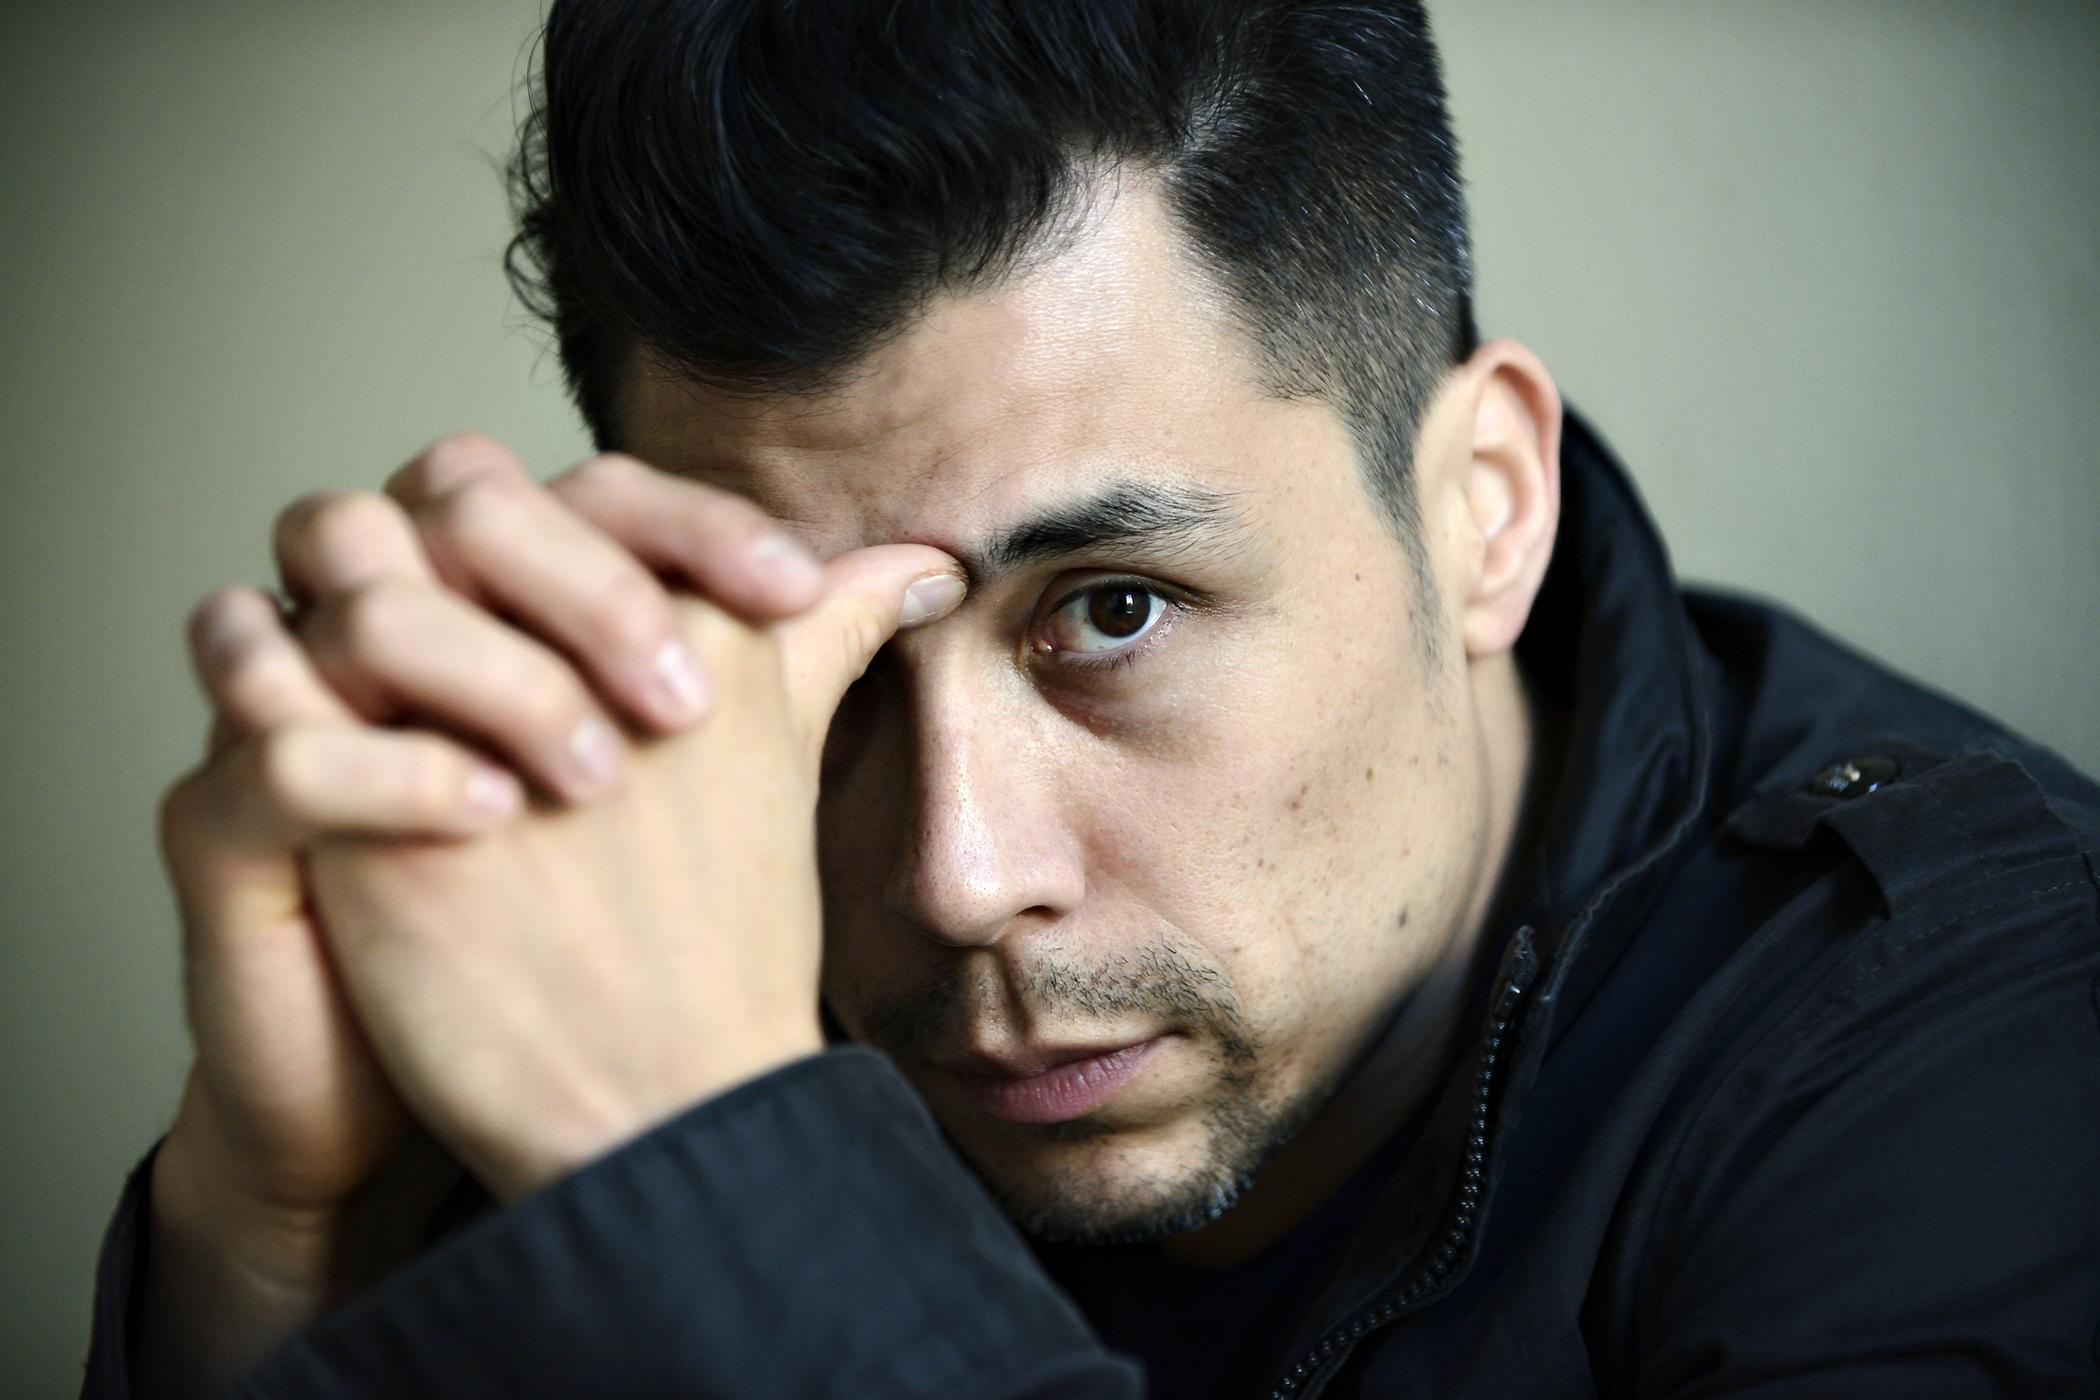 A light-skinned man poses with hands folded, thumb pressed against the bridge of his nose. He looks out at the viewer.